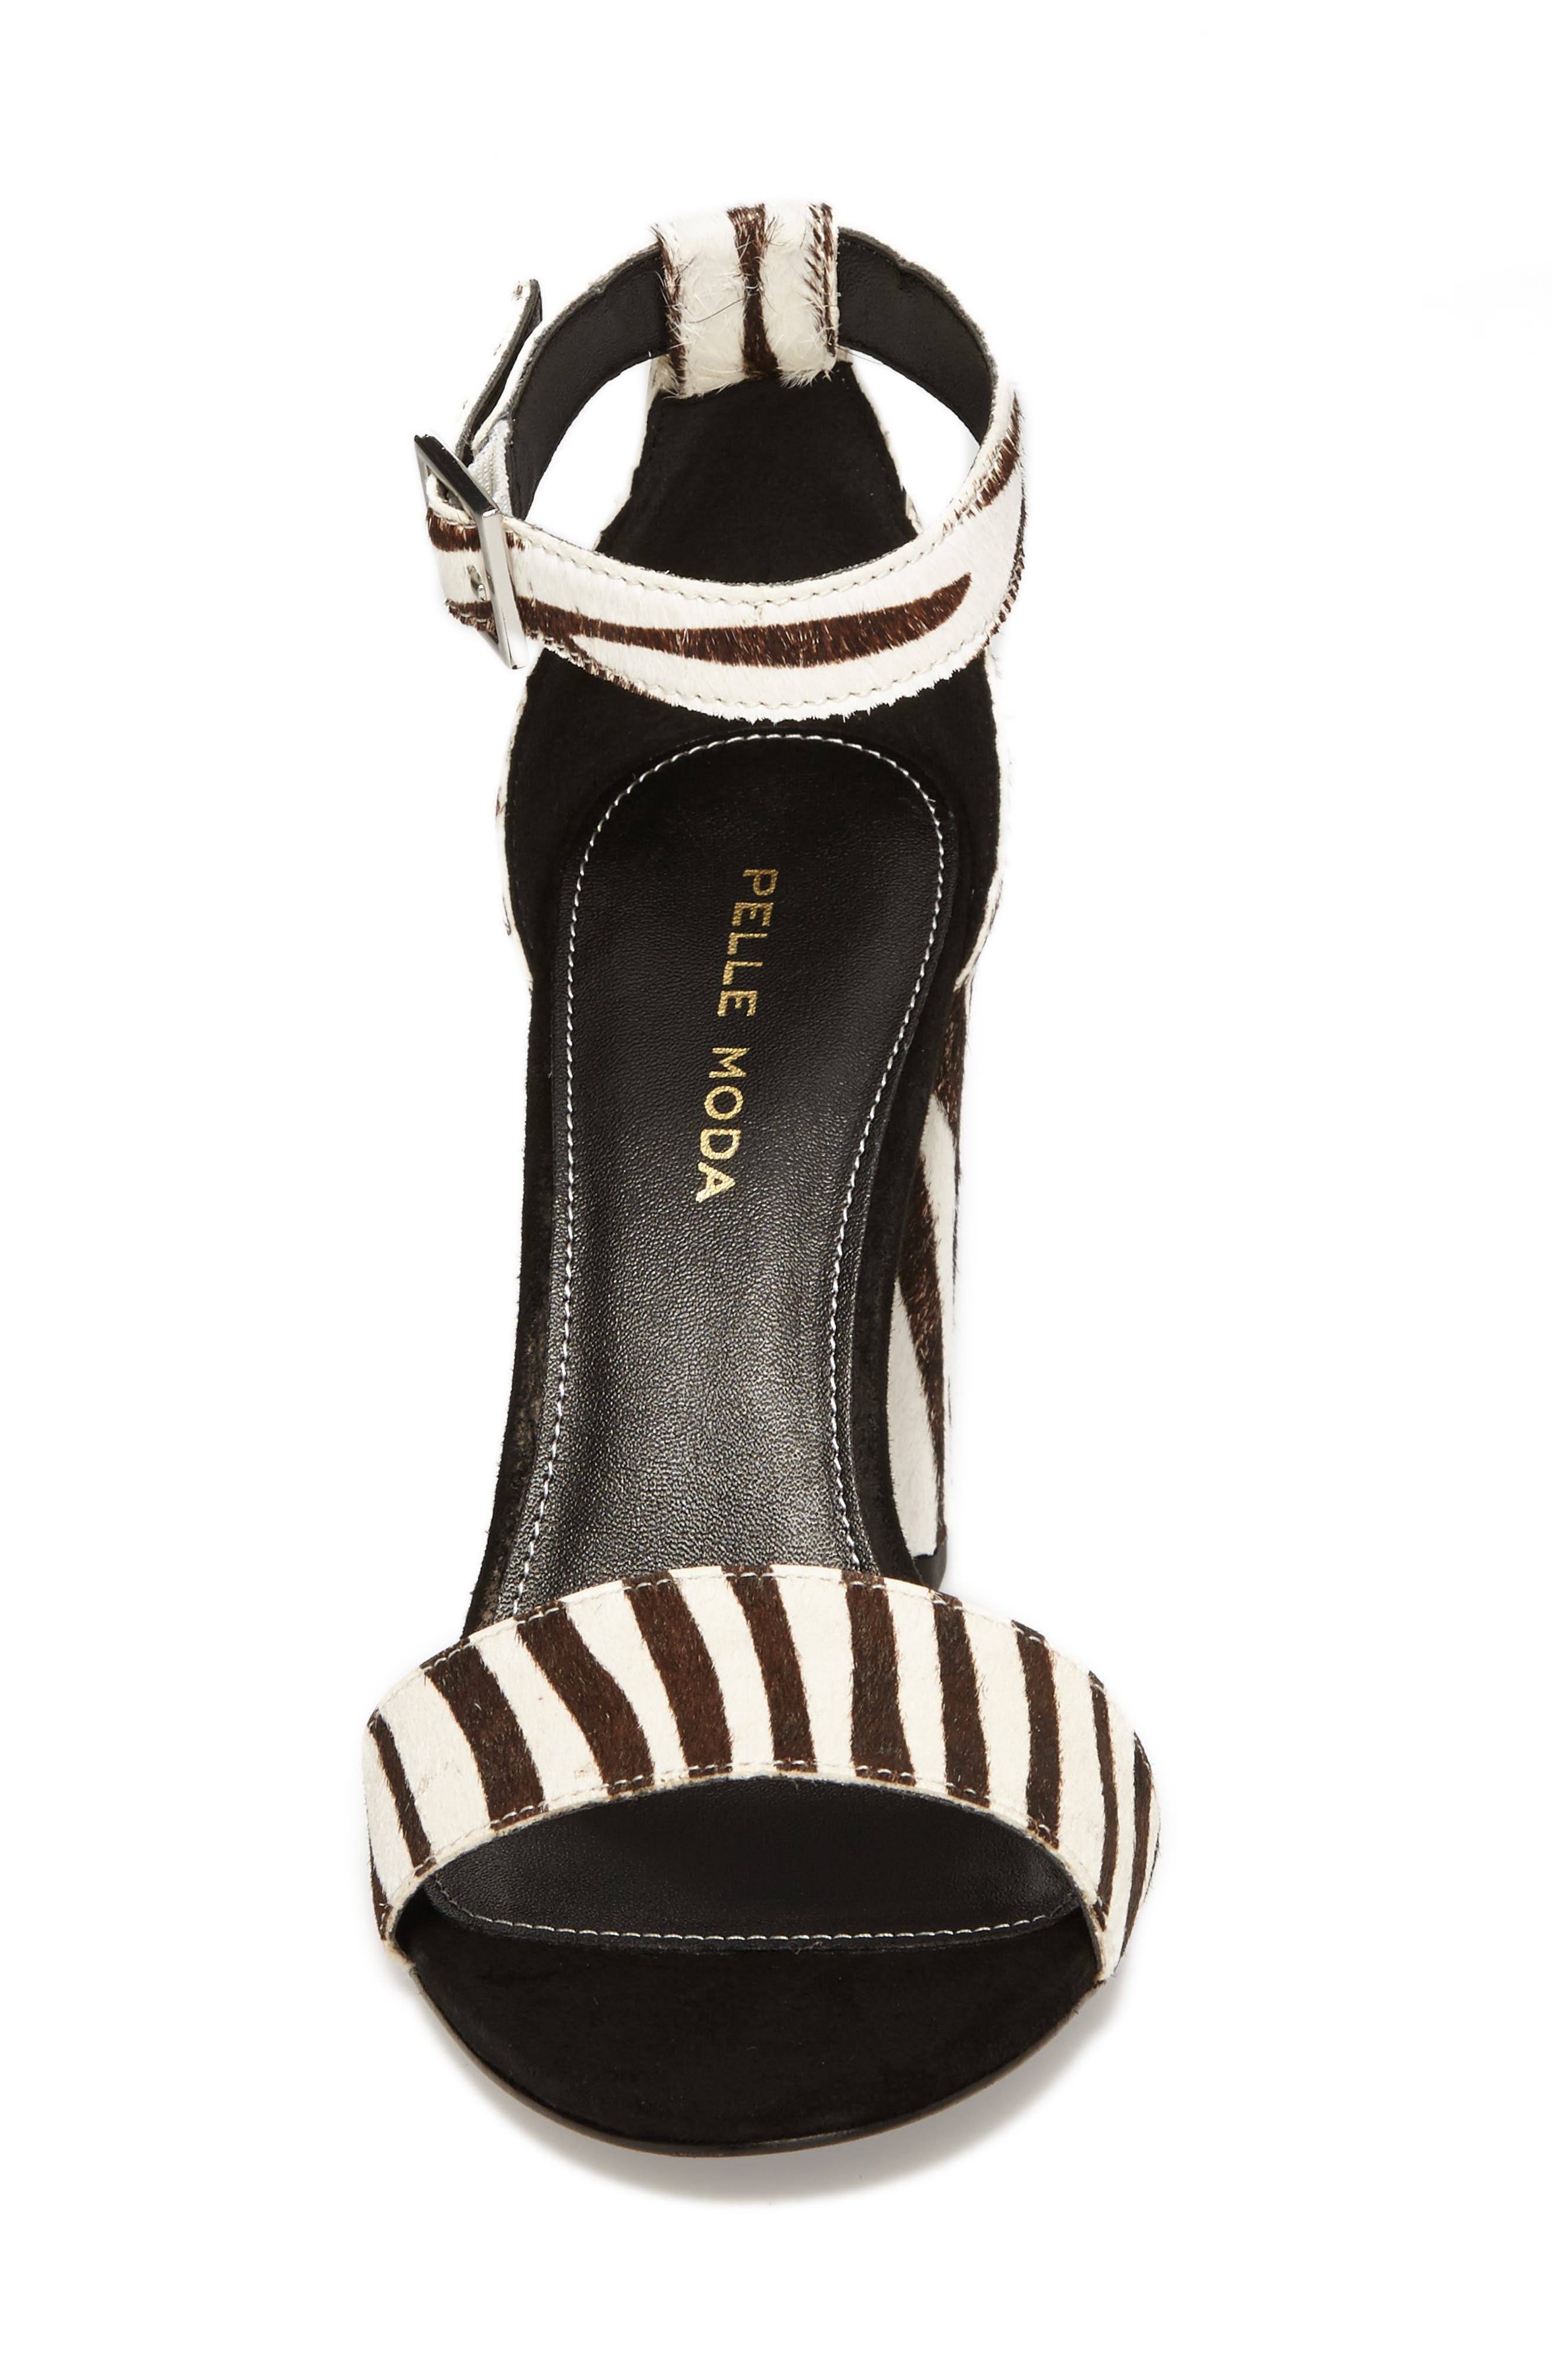 'Bonnie' Ankle Strap Sandal,                             Alternate thumbnail 4, color,                             Zebra Print Calf Hair